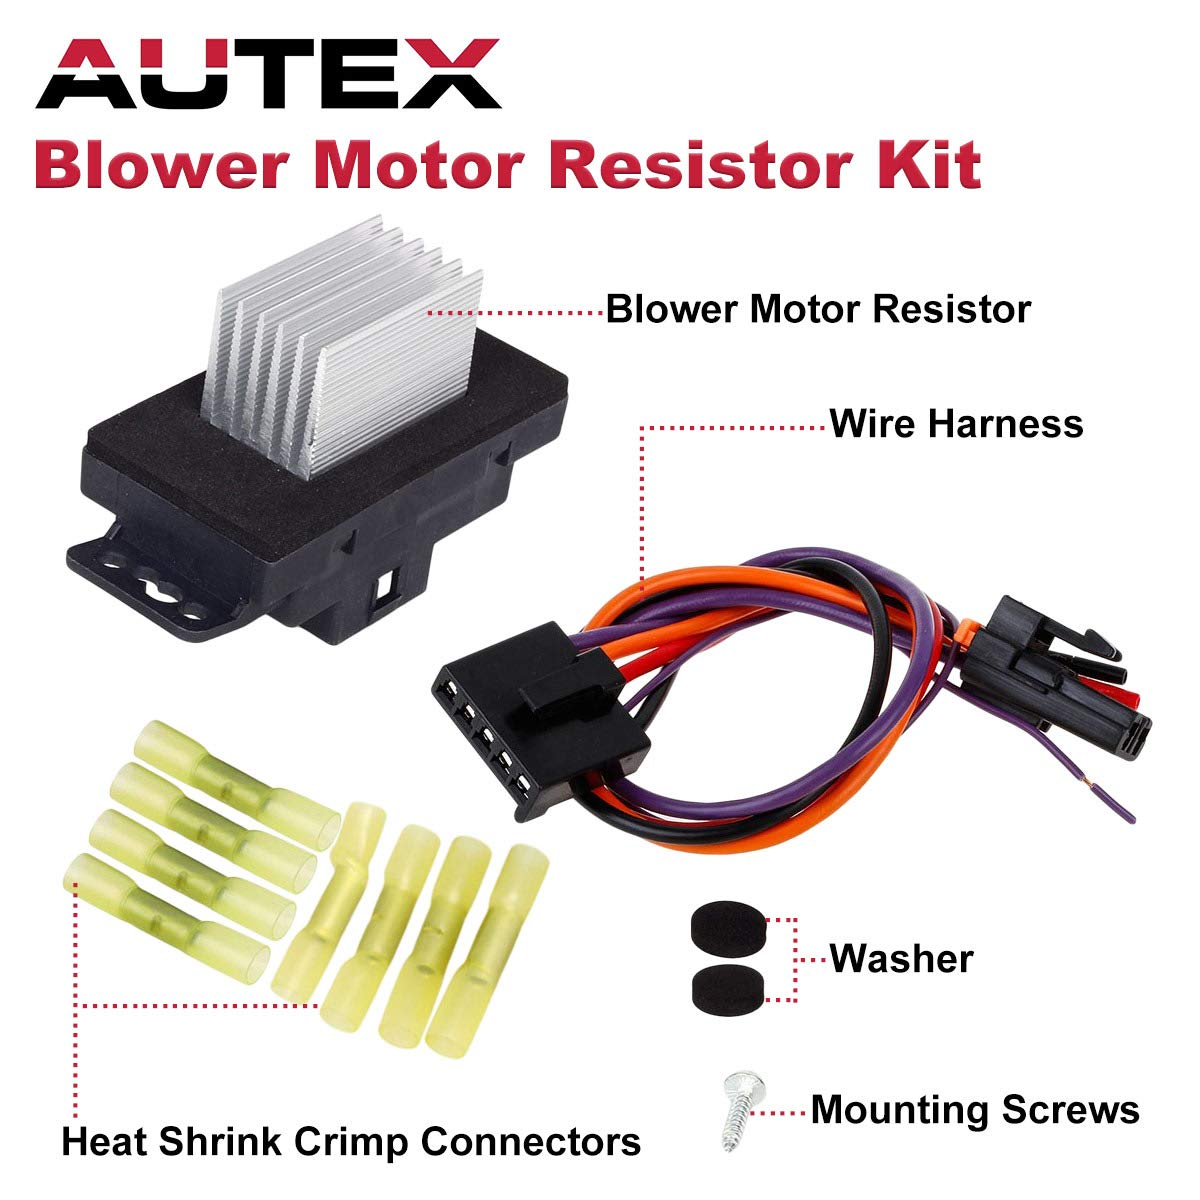 Partssquare Hvac Blower Motor Resistor Complete Kit With 2013 Chevy Impala Ac Wiring Diagram Harness 15850268 22754990 Ru359 Replacement For Silverado Tahoe Suburban